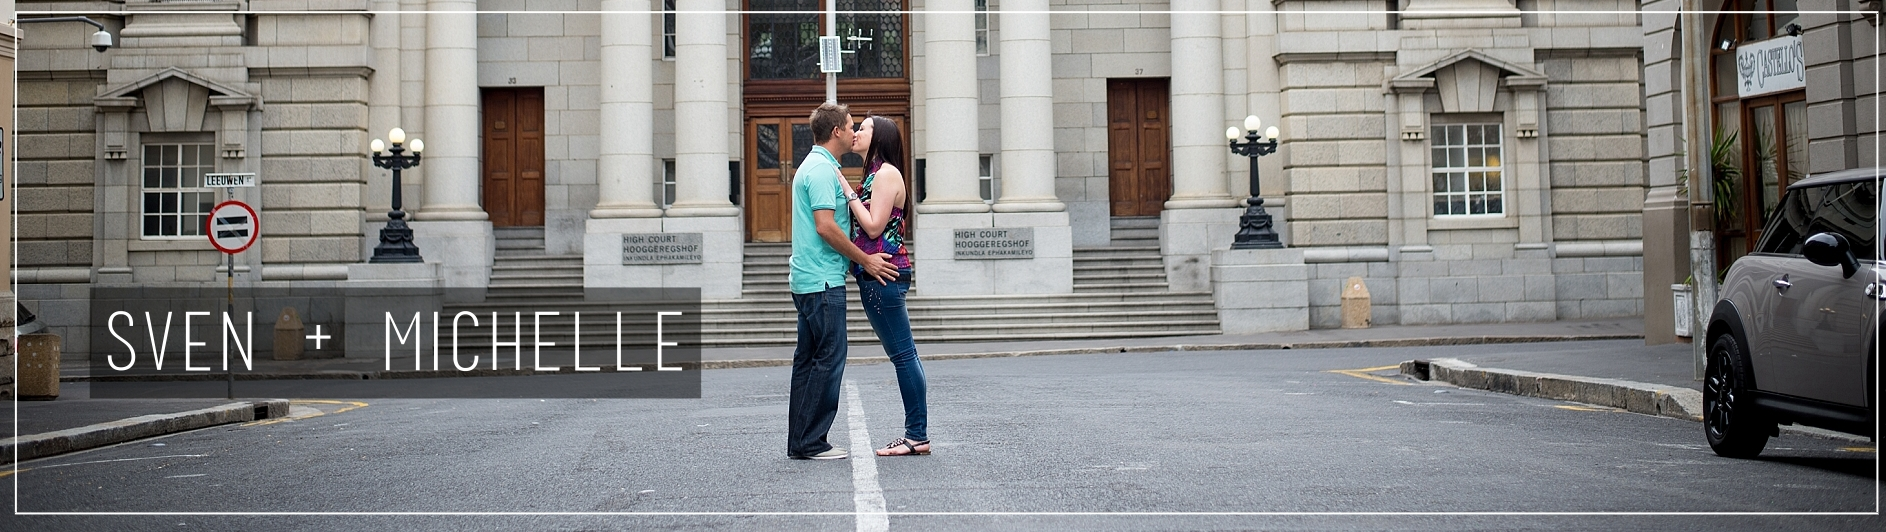 Darren Bester Photography - Cape Town - Sven and Michelle_0001.jpg